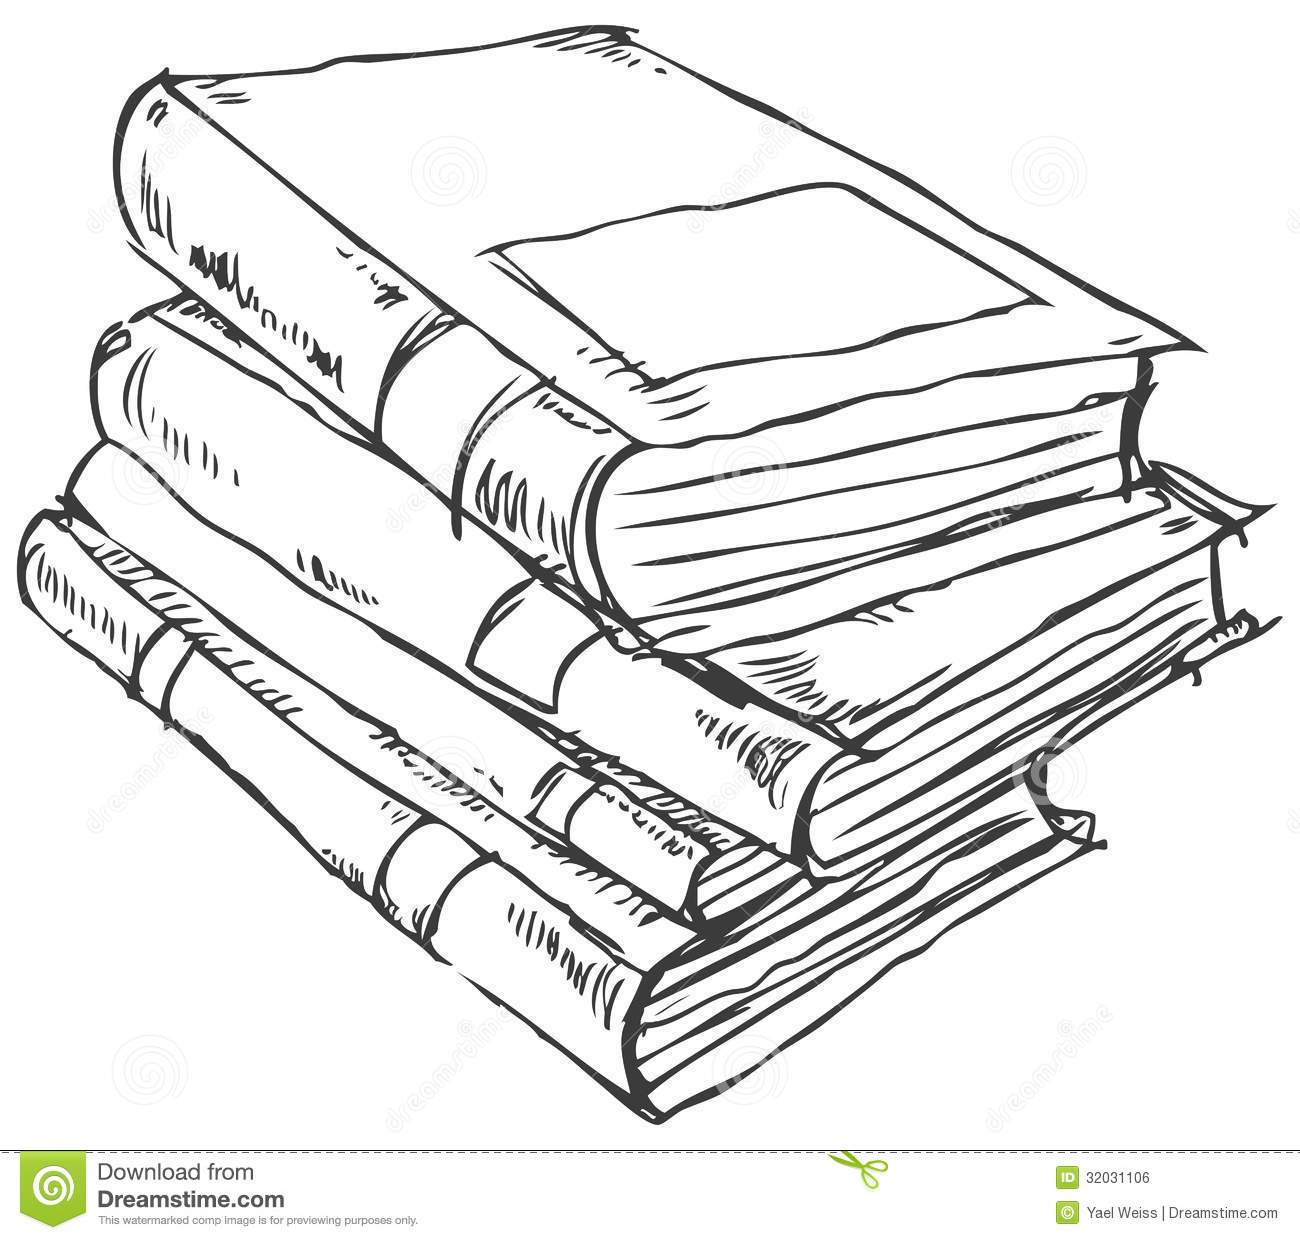 Image Book icoline in addition Royalty Free Stock Image Stack Books Doodle Vector Image32031106 together with Book Icon furthermore Dessin Anim C3 A9 Pile De Livres Gm464578579 33246372 likewise Pen Colouring Page. on cartoon stack of books